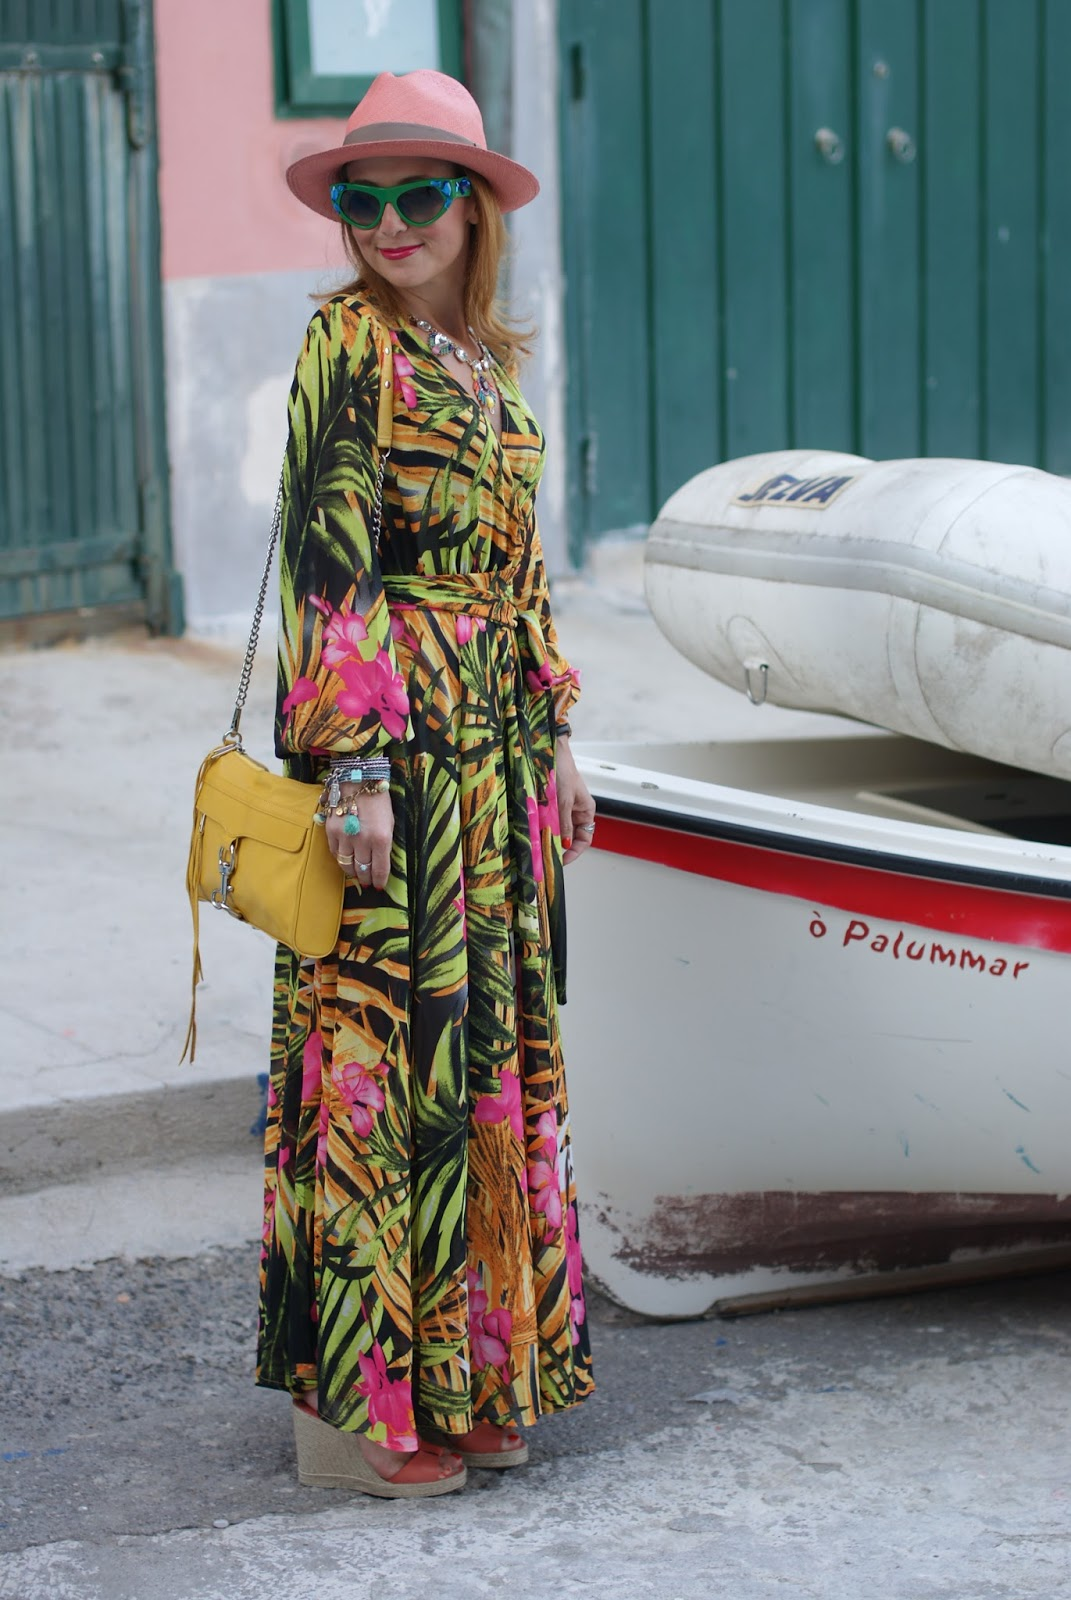 prada voice sunglasses found on giarre dot com, tropical print chiffon maxi dress, ecua-andino hat for a summer boho style on Fashion and Cookies fashion blog, fashion blogger style